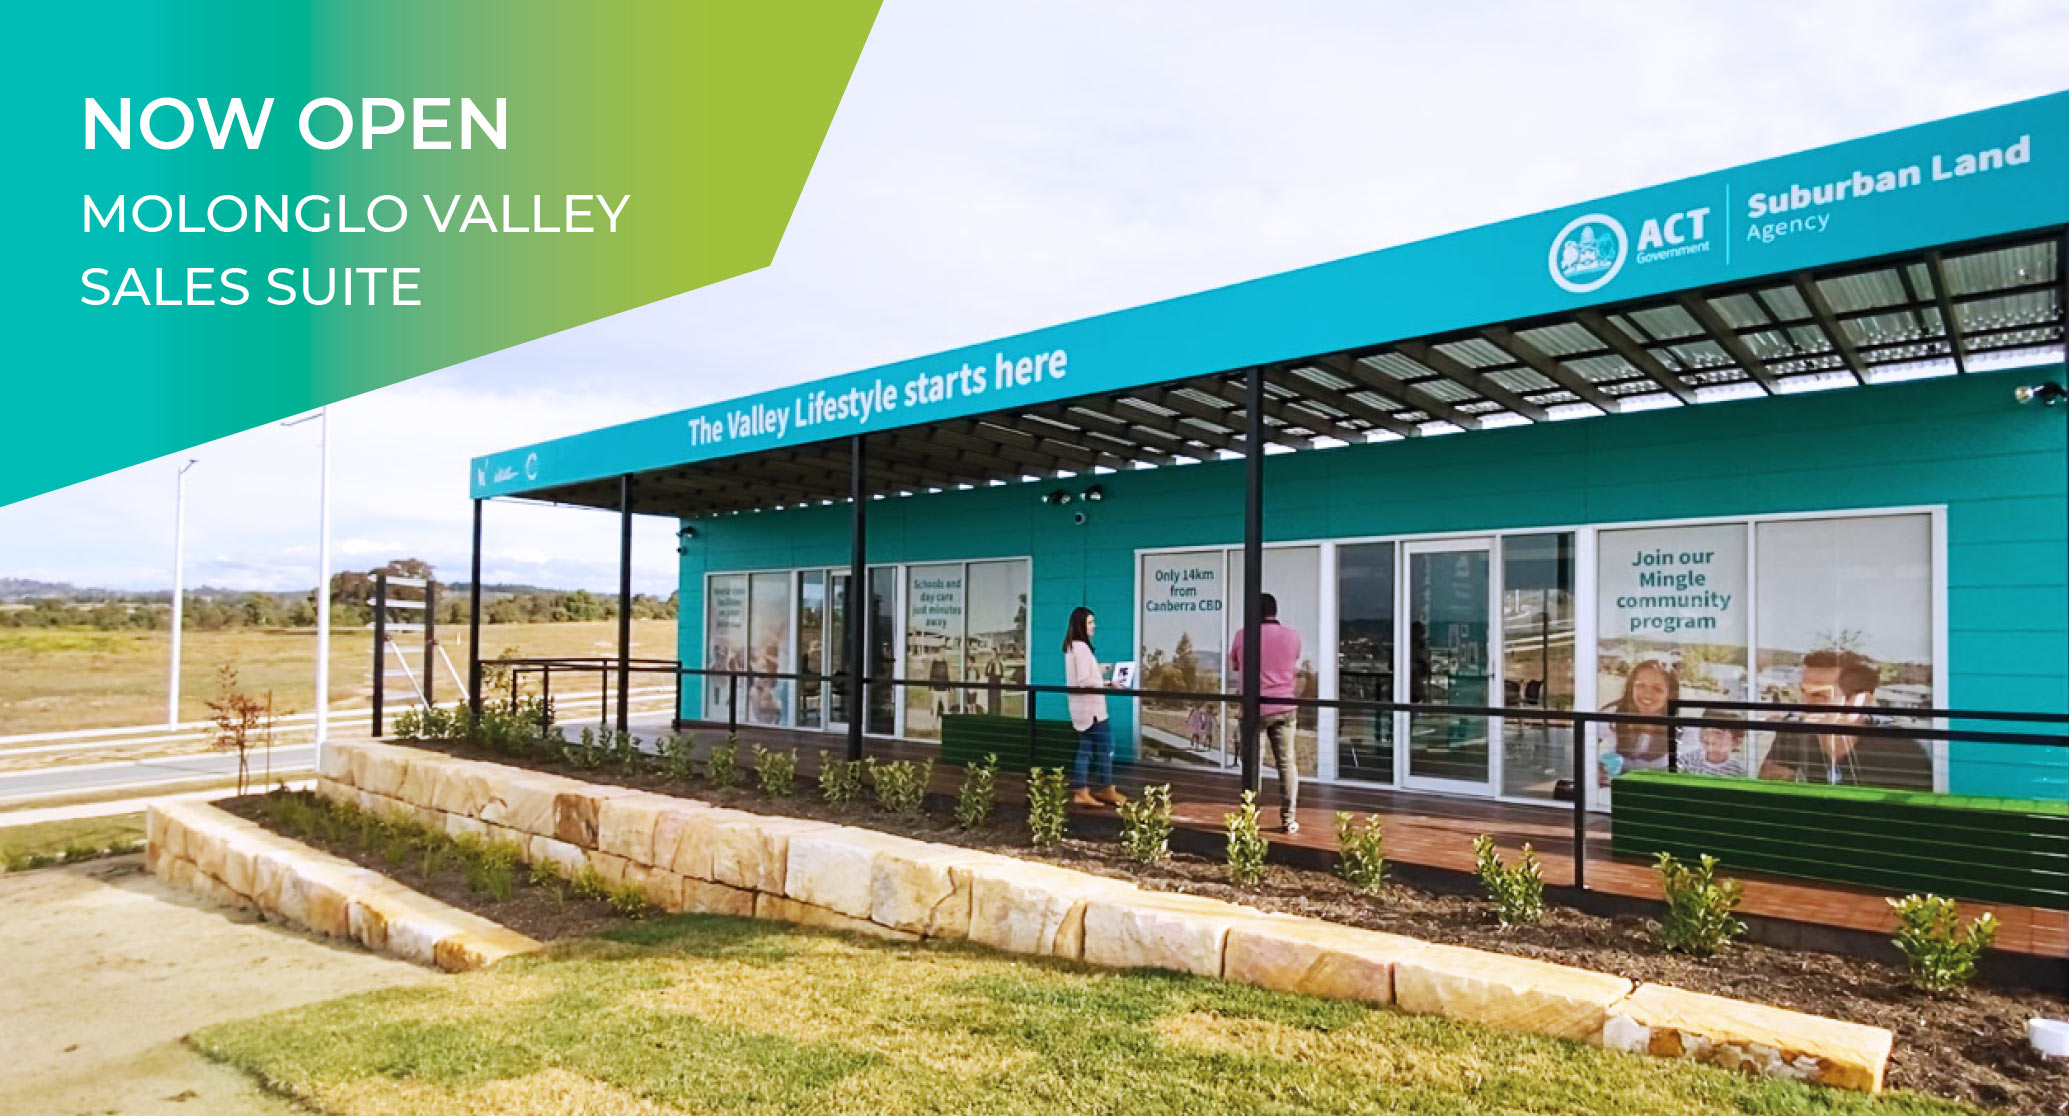 Molonglo Valley Sales Suite Now Open